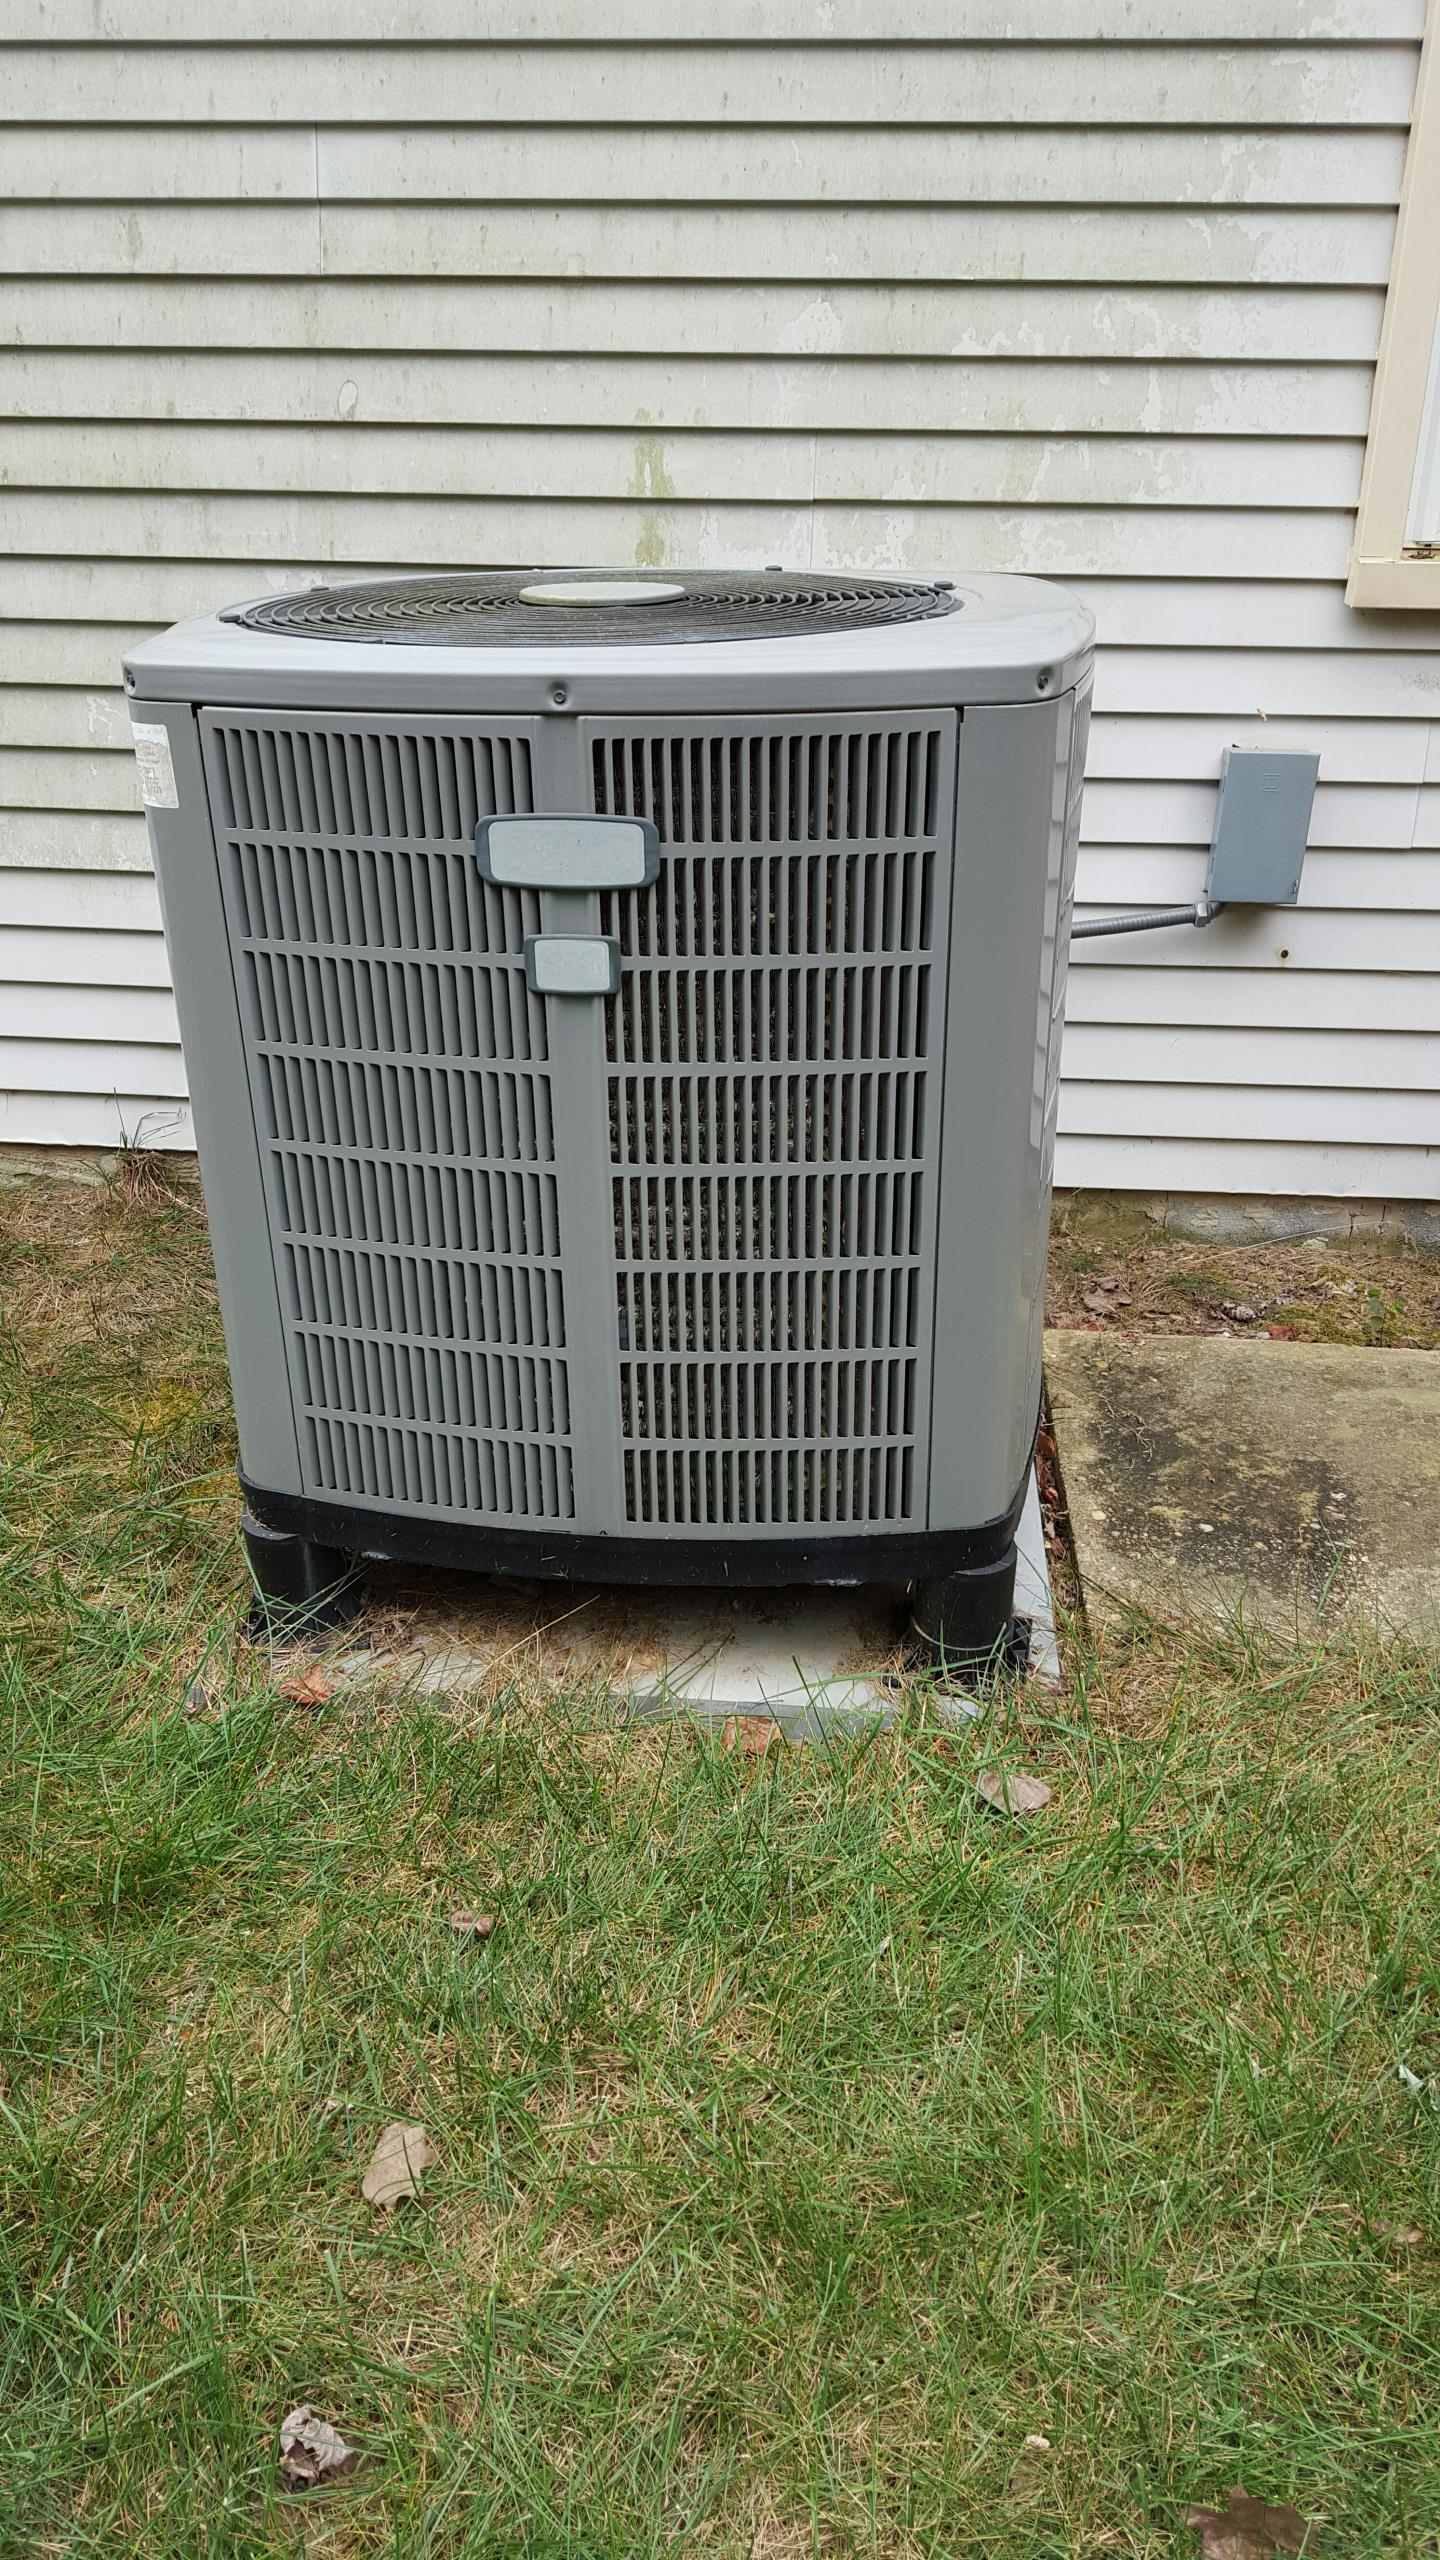 Gambrills, MD - American Standard heat pump furnace heating & air conditioning system replacement installation repair service call Gambrills Maryland